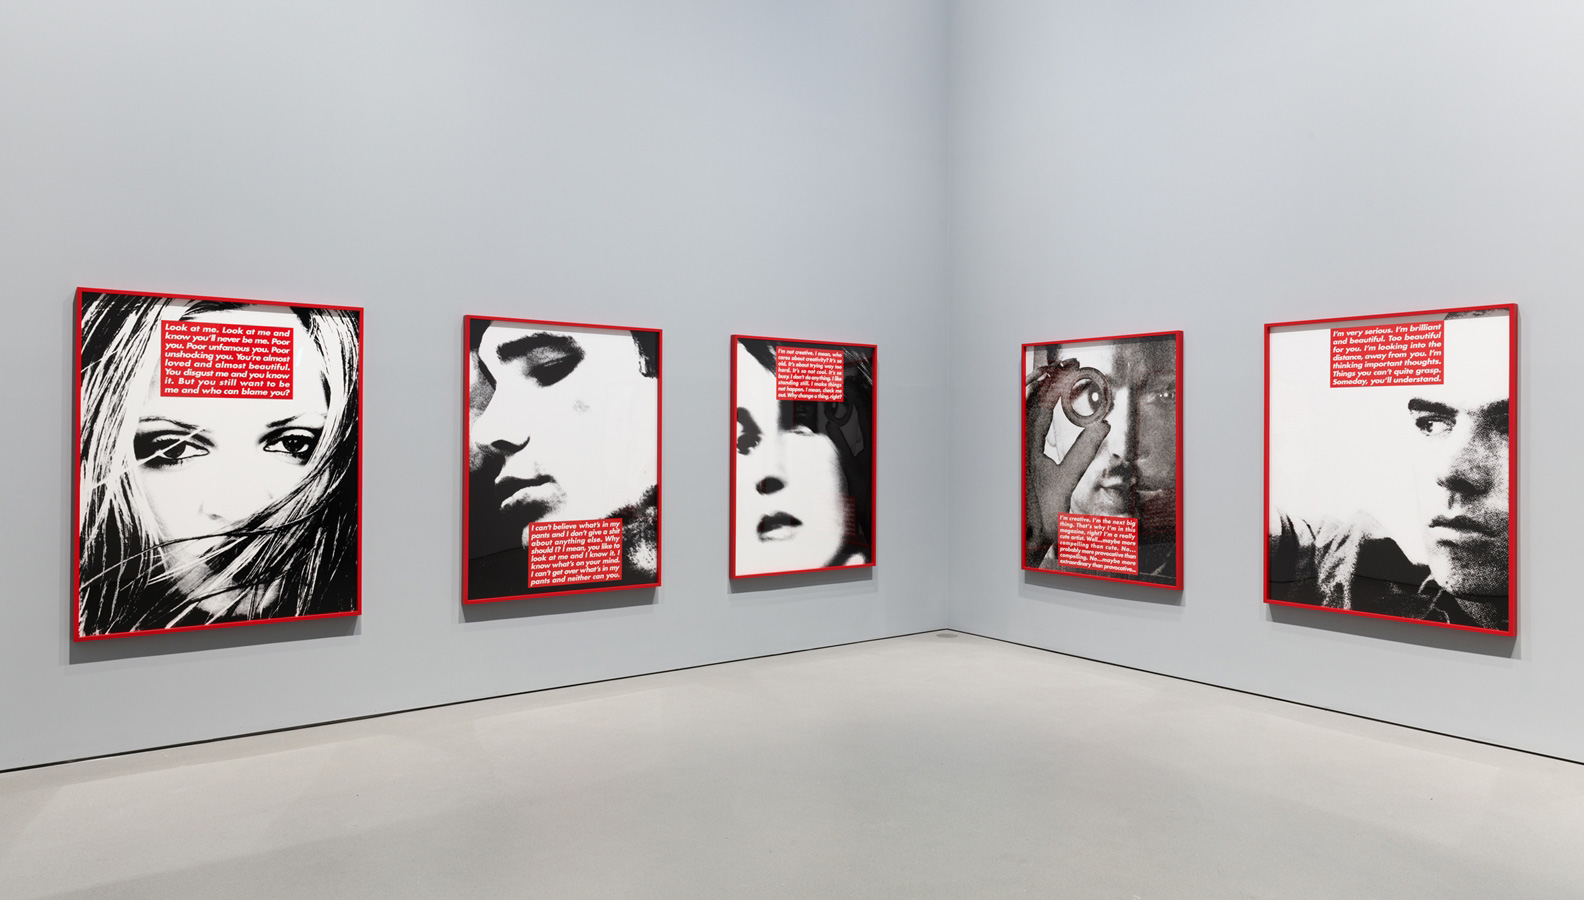 Barbara Kruger, Untitled (Project for Dazed and Confused) (APMA) | Barbara Kruger | STIRworld